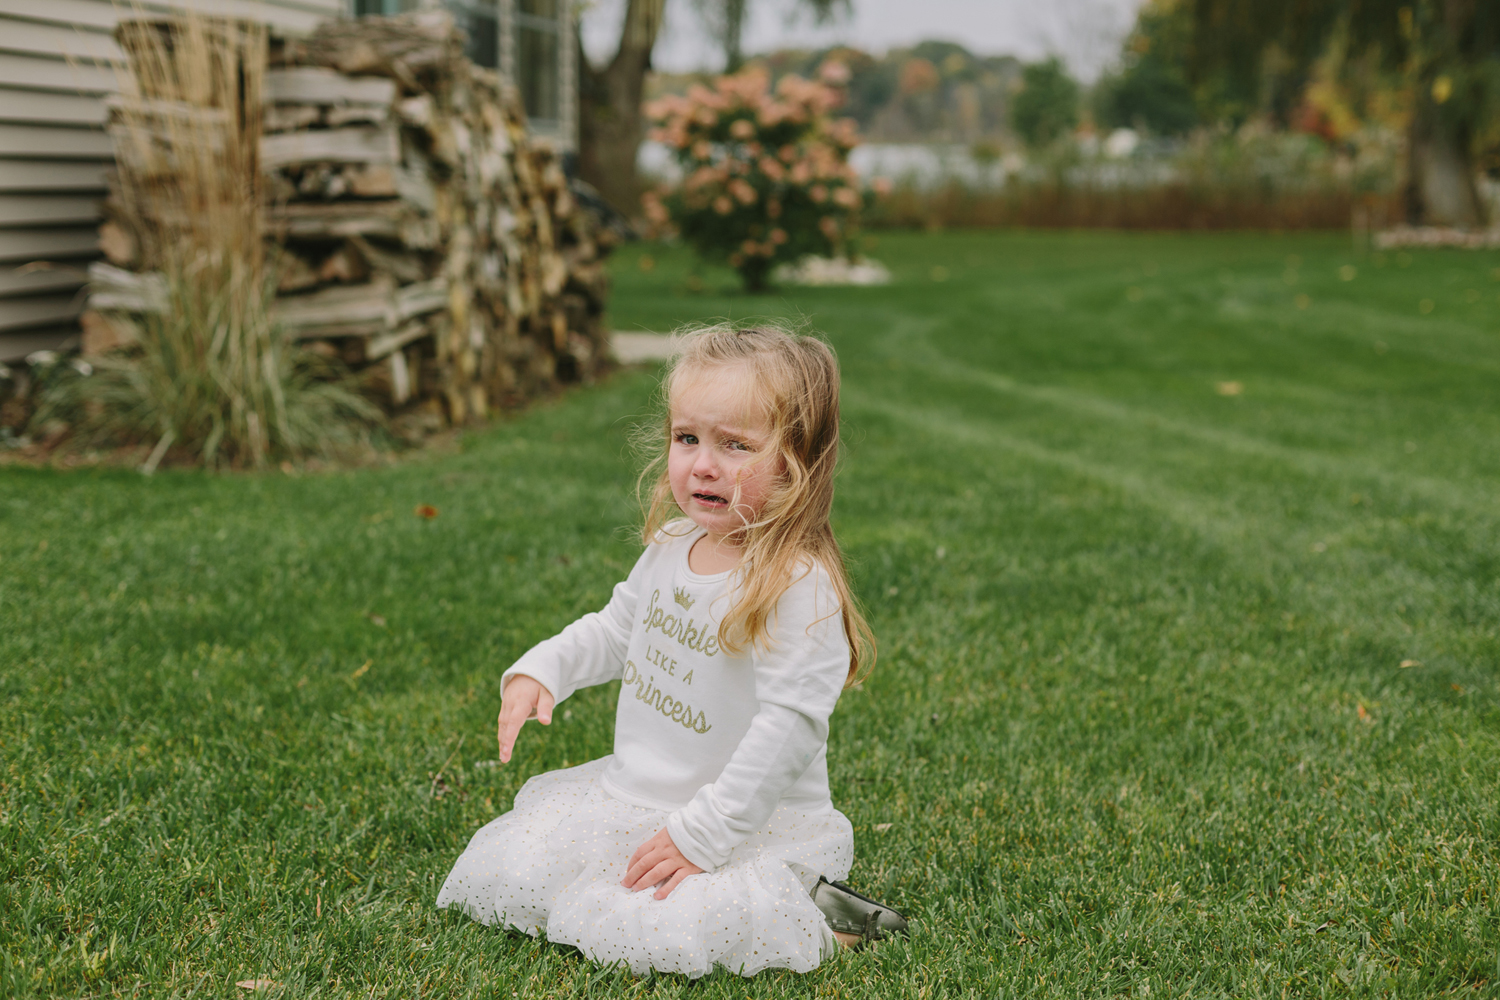 Jillian VanZytveld Photography - West Michigan Lifestyle Photography - 11.jpg